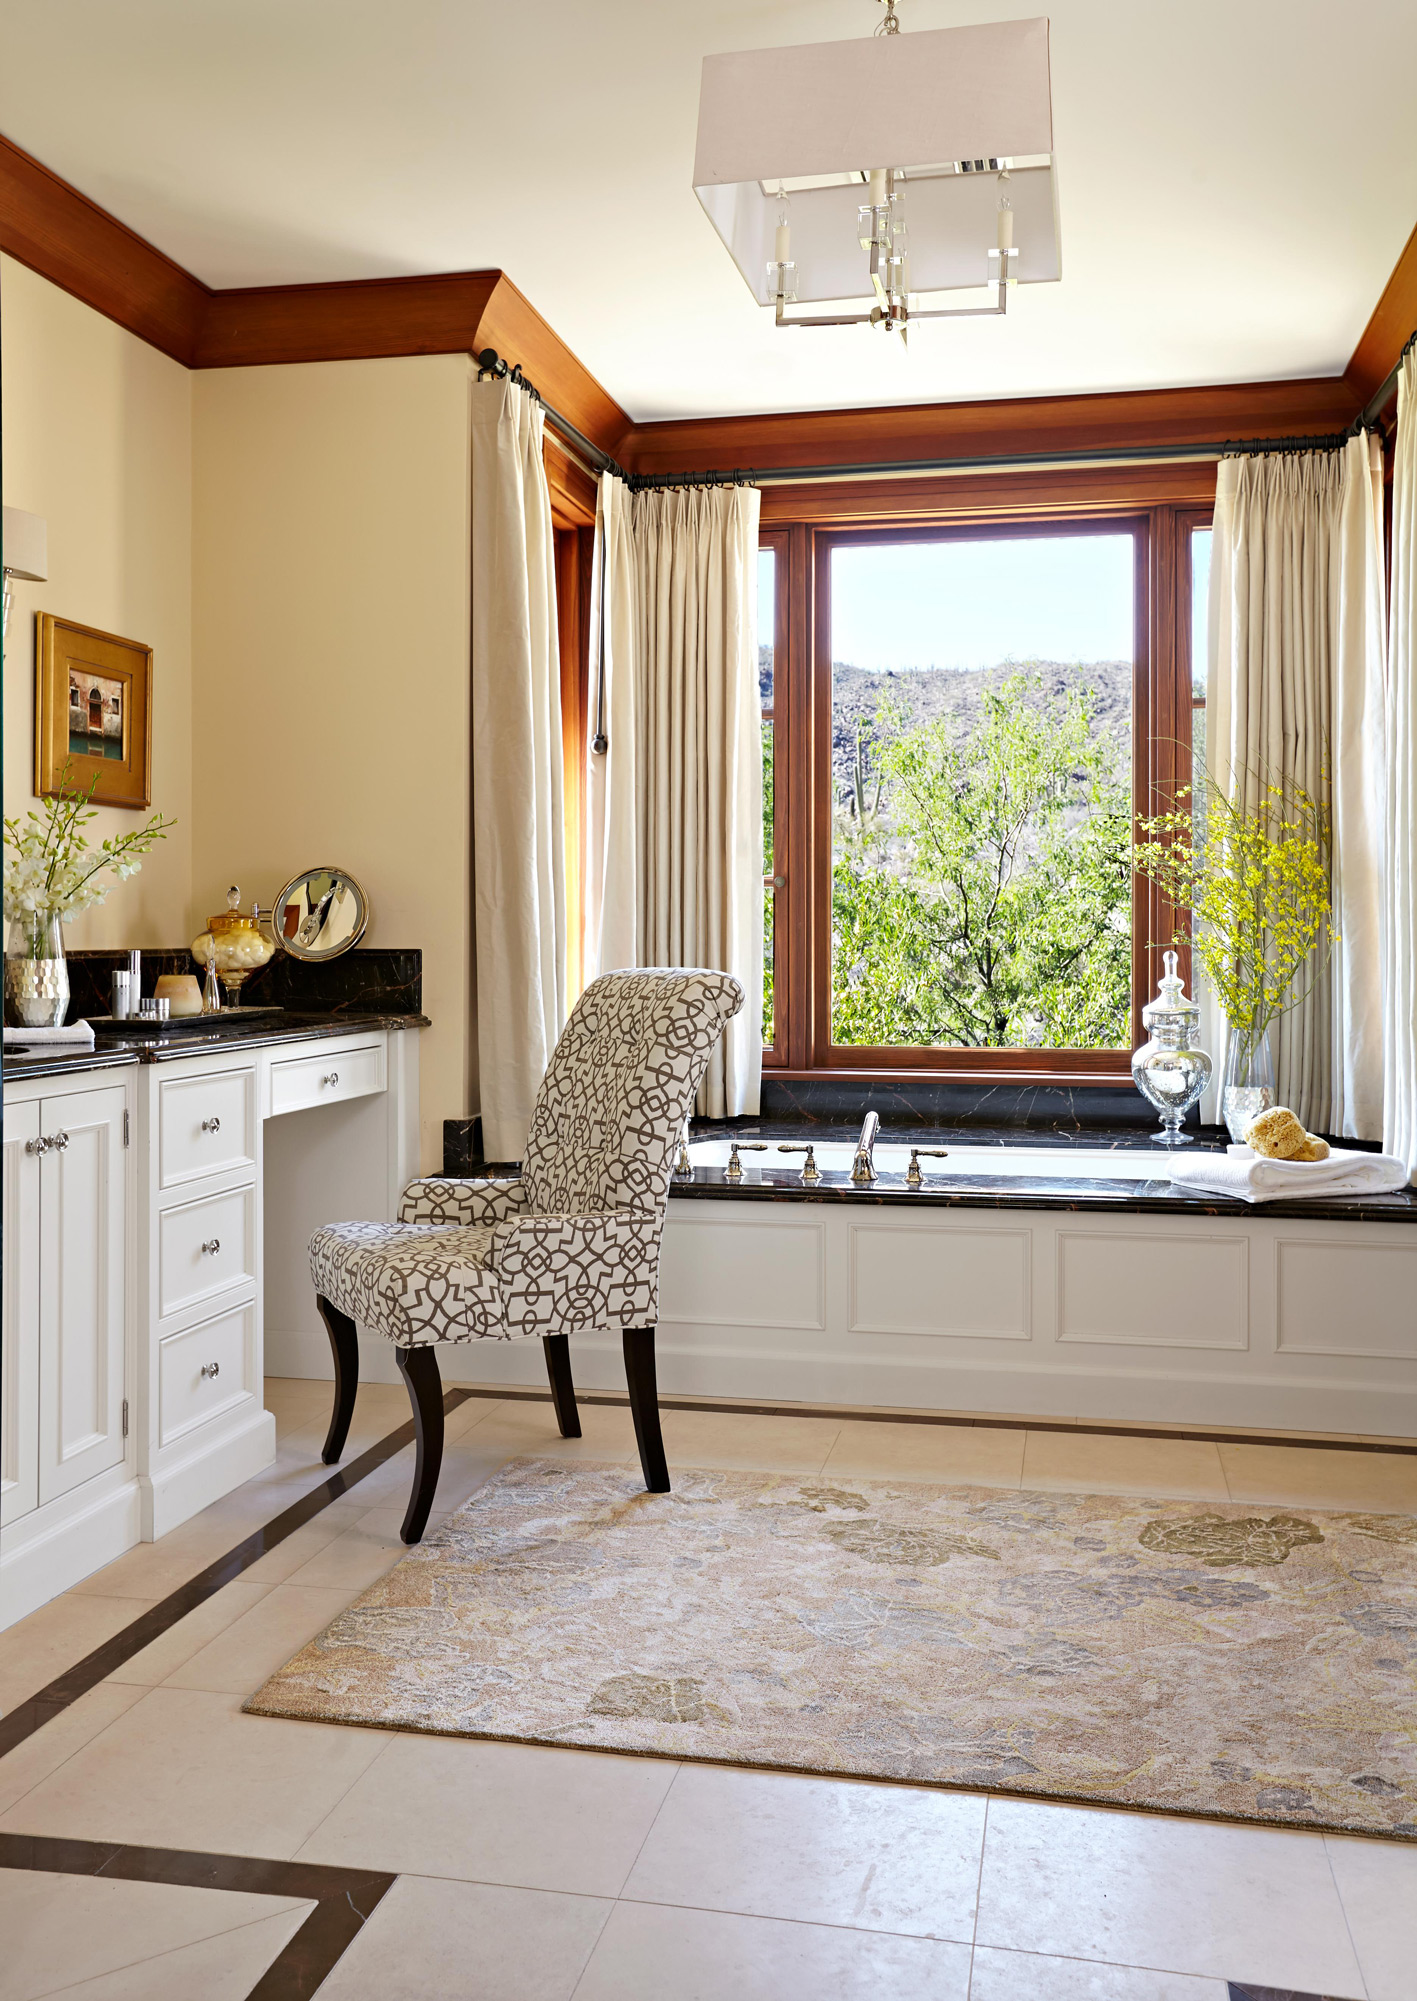 large bathroom bathtub nook with windows